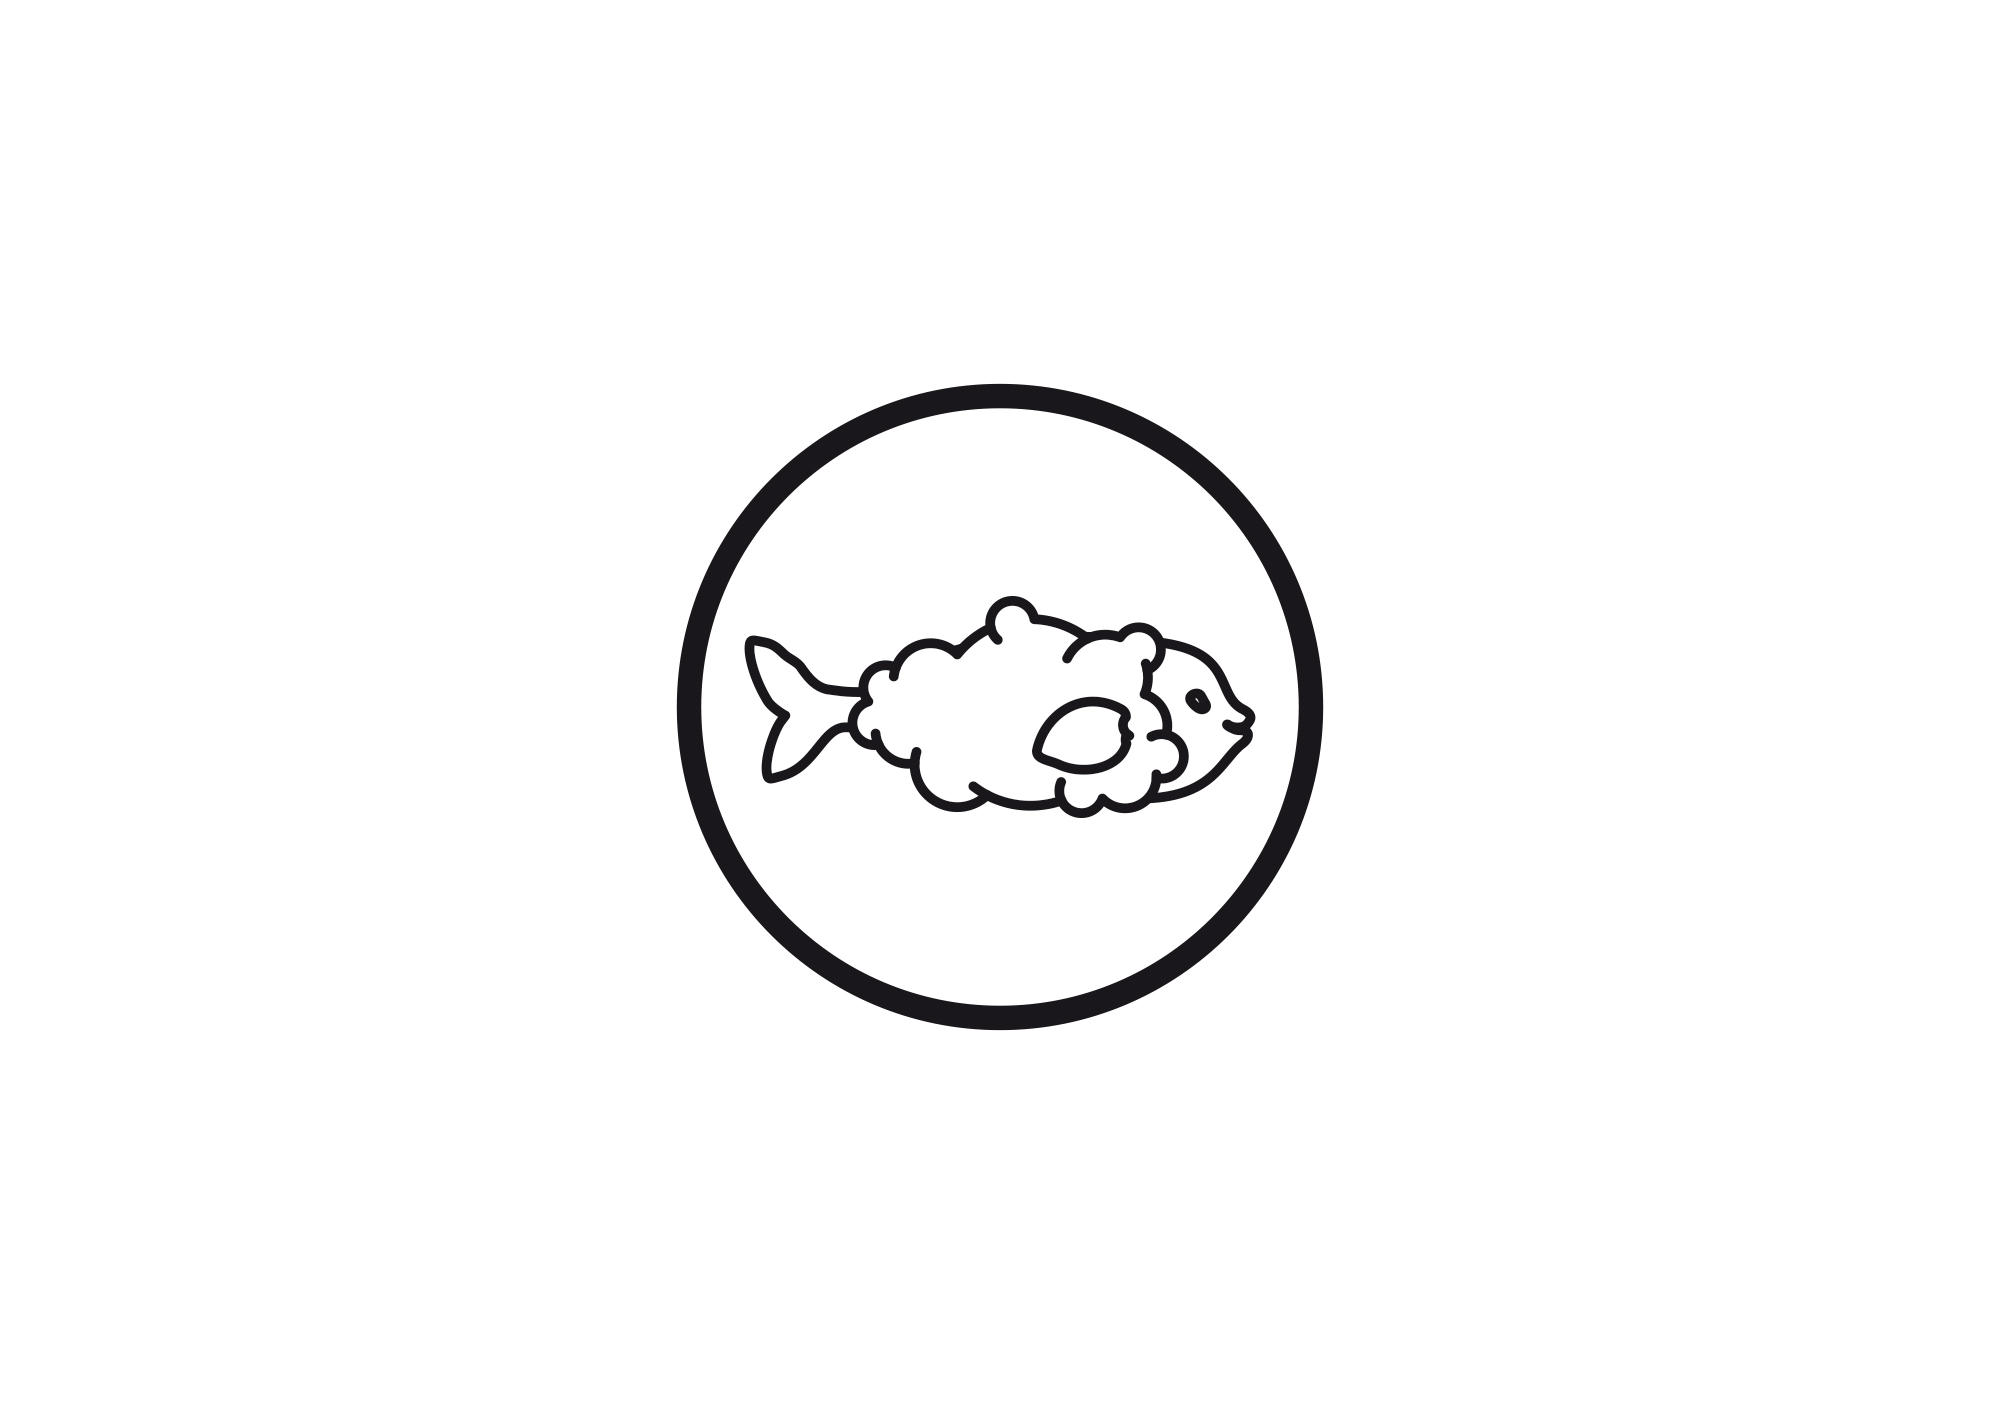 Fischfell_Logo_Icon.jpg?fit=2000%2C1414